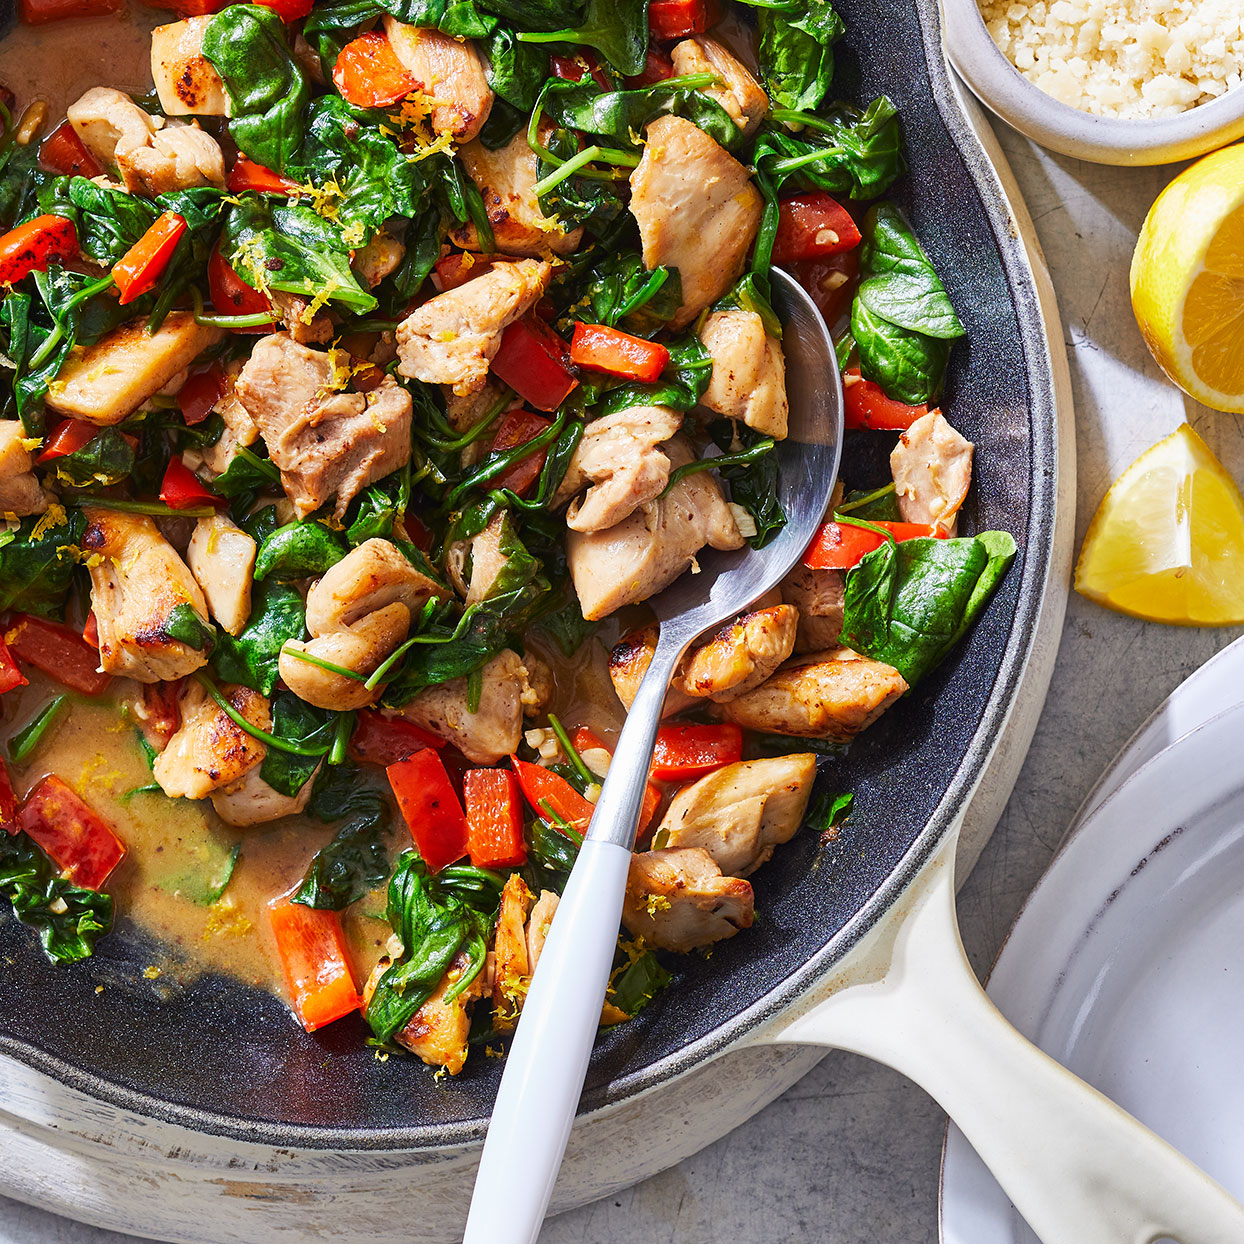 Skillet Lemon Chicken with Spinach Trusted Brands